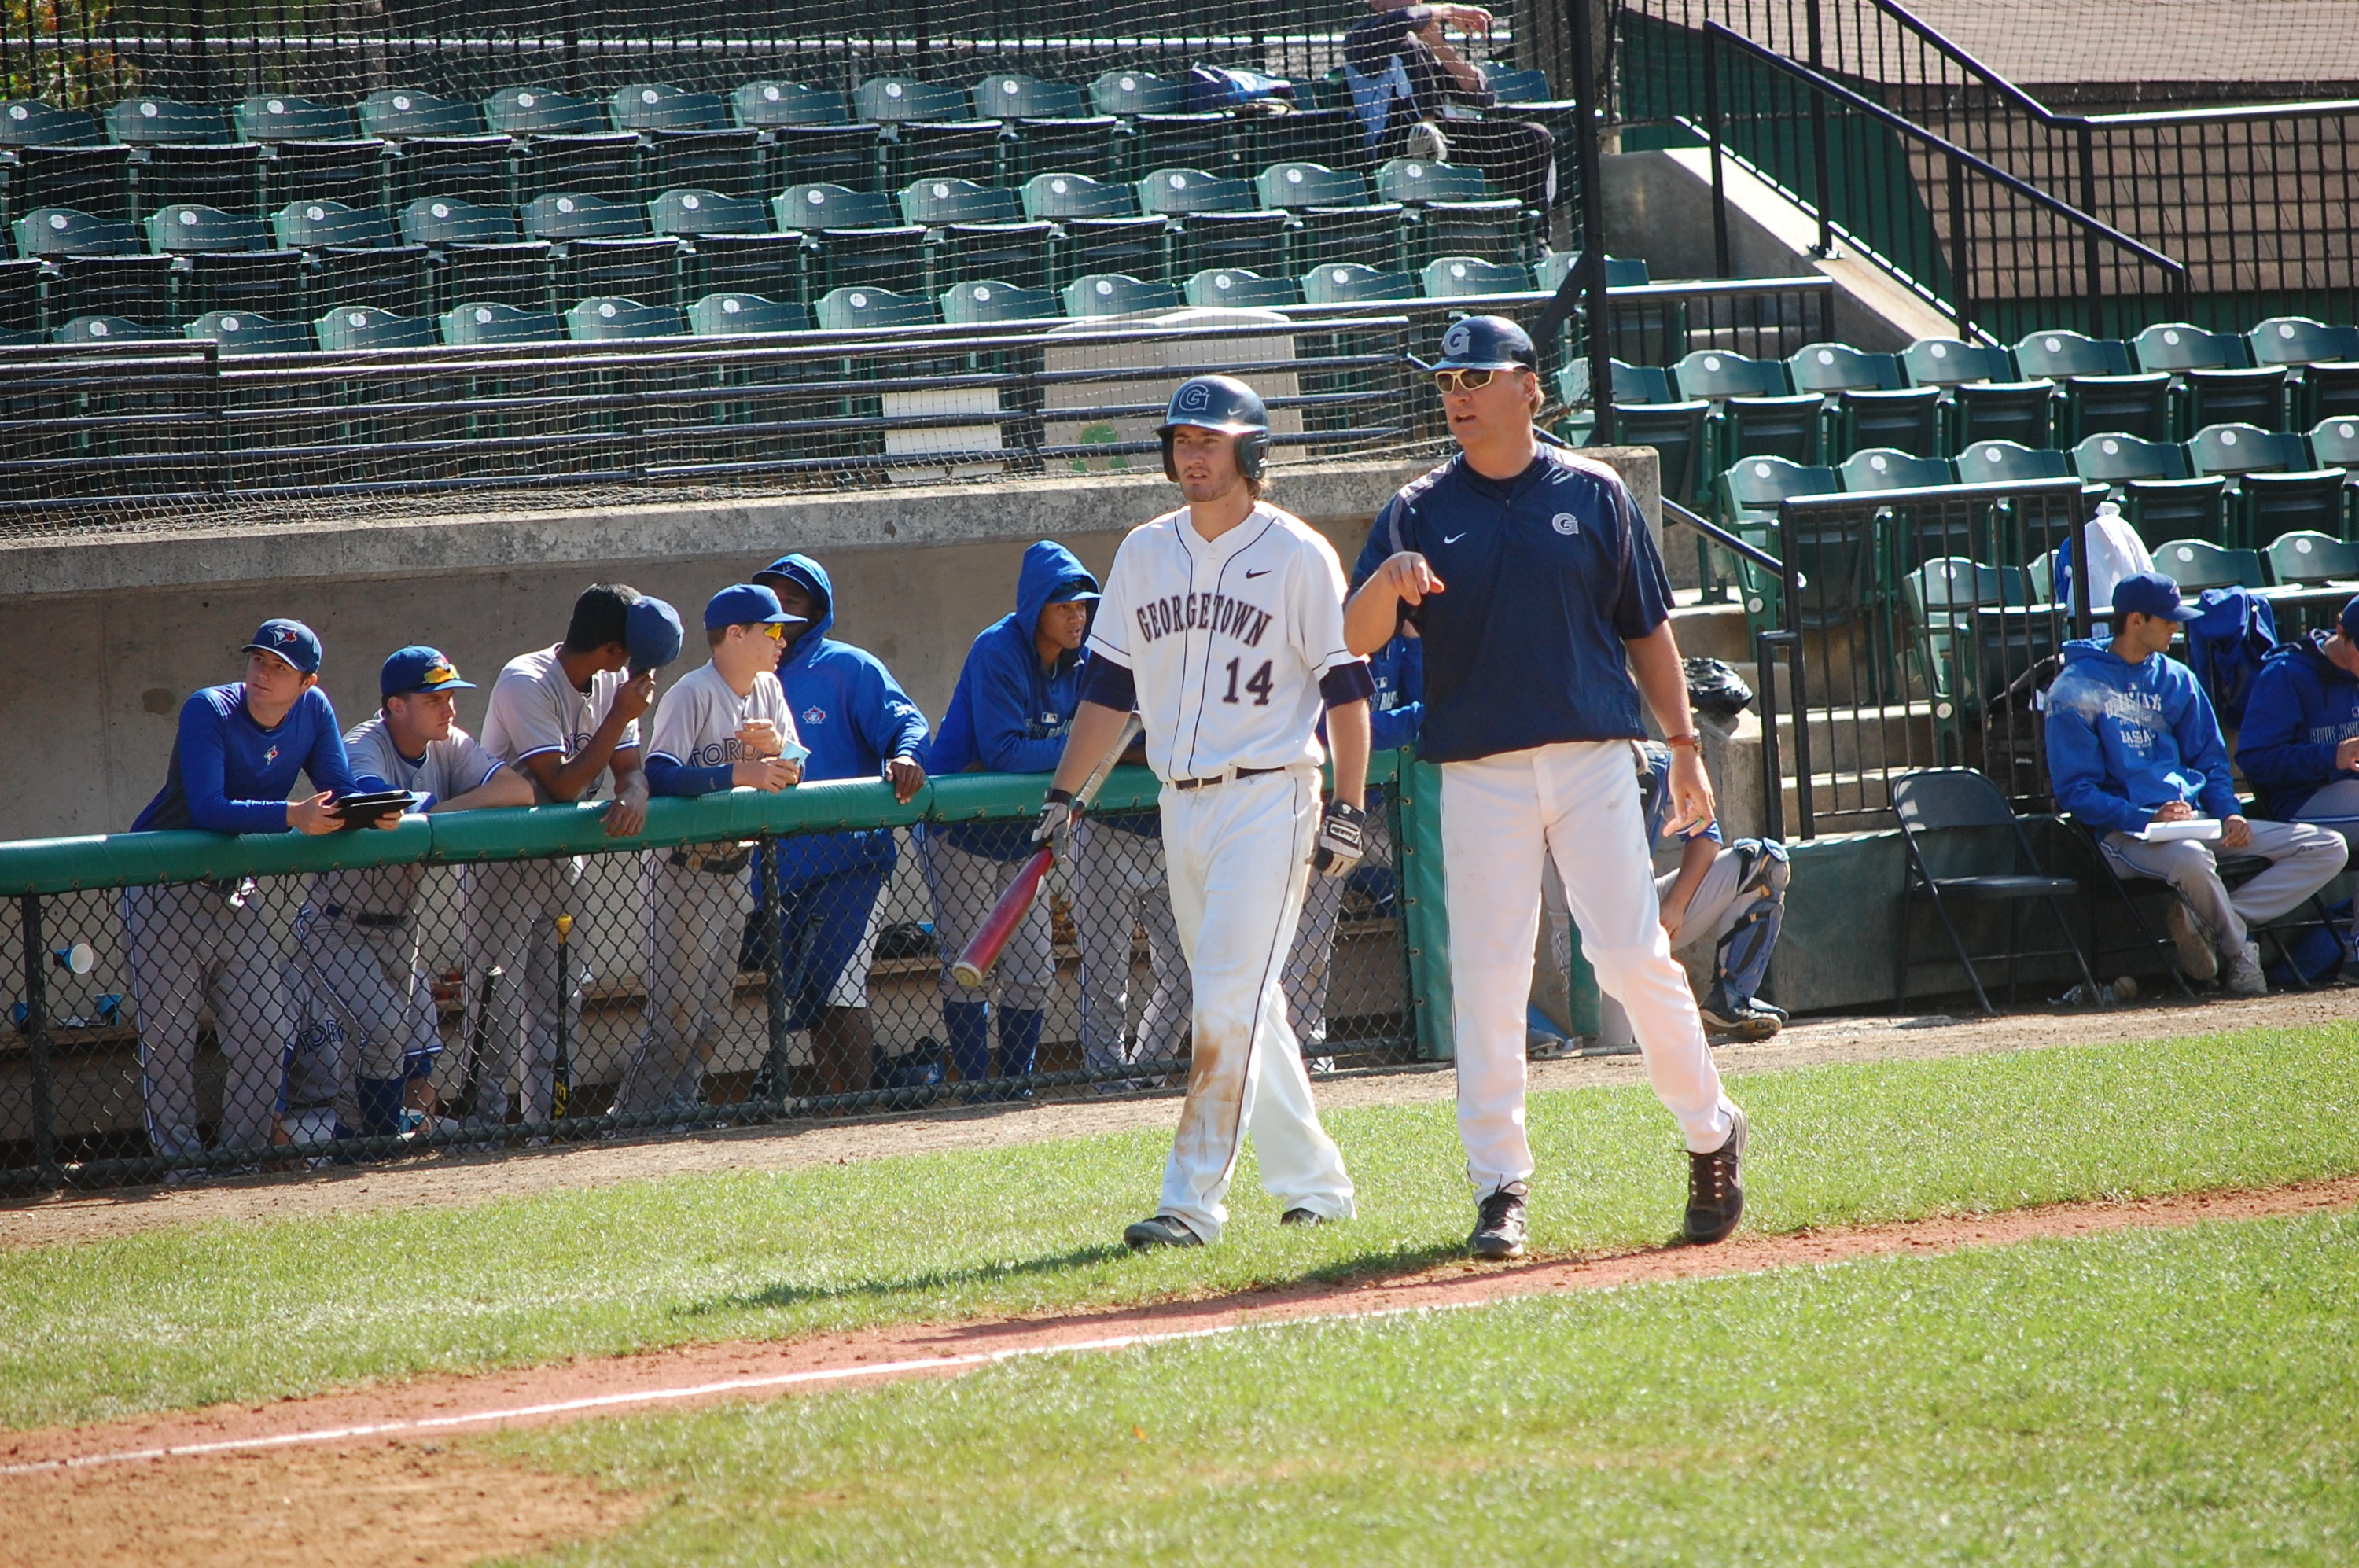 The Hoyas will play Marist at 2 p.m. on Tuesday, March 17 at Shirley Povich Field.